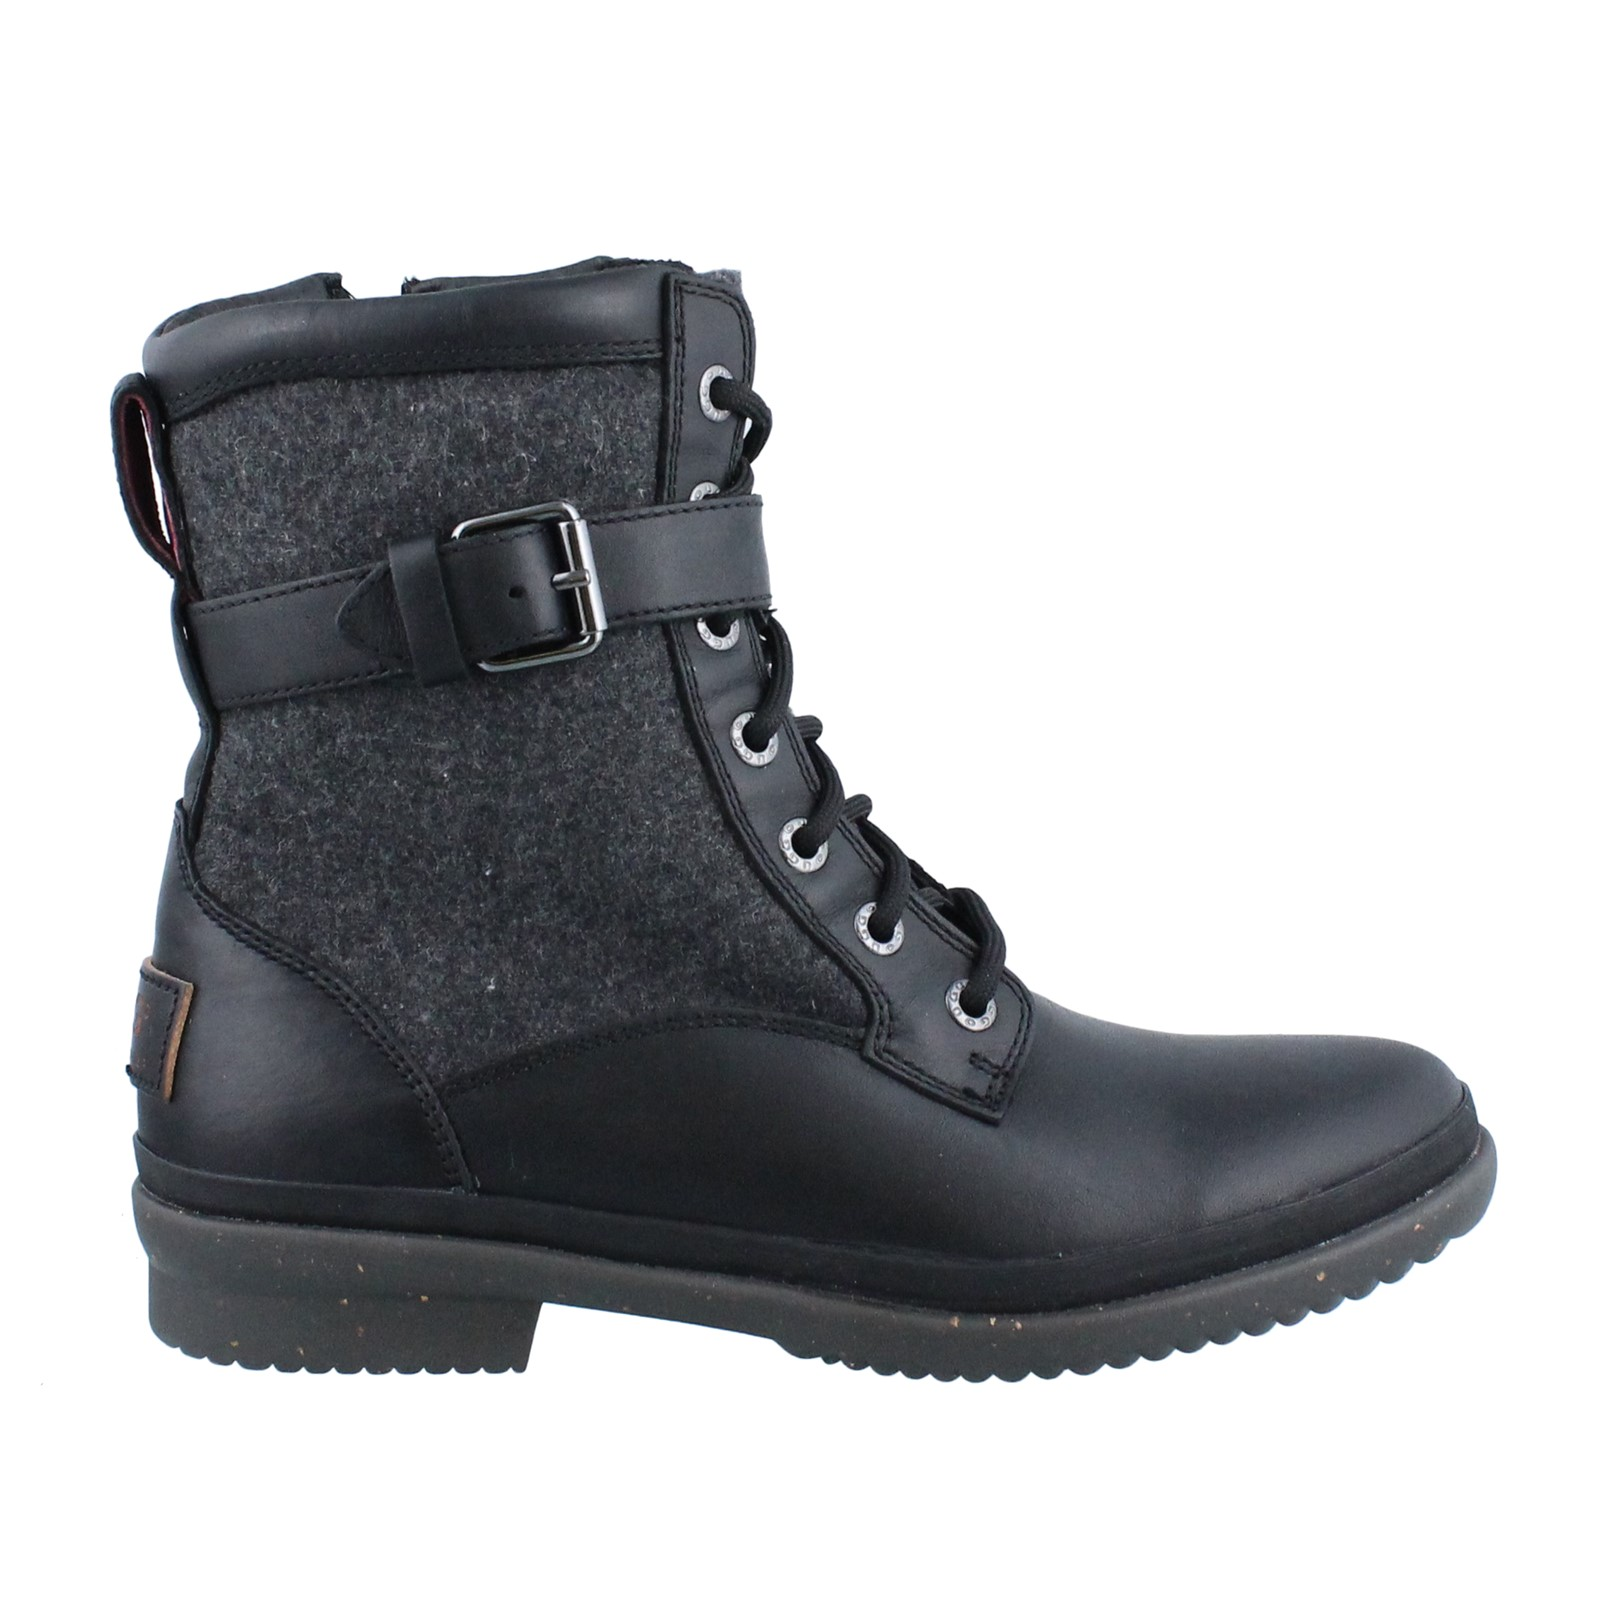 Women's Ugg, Kesey Combat Boots